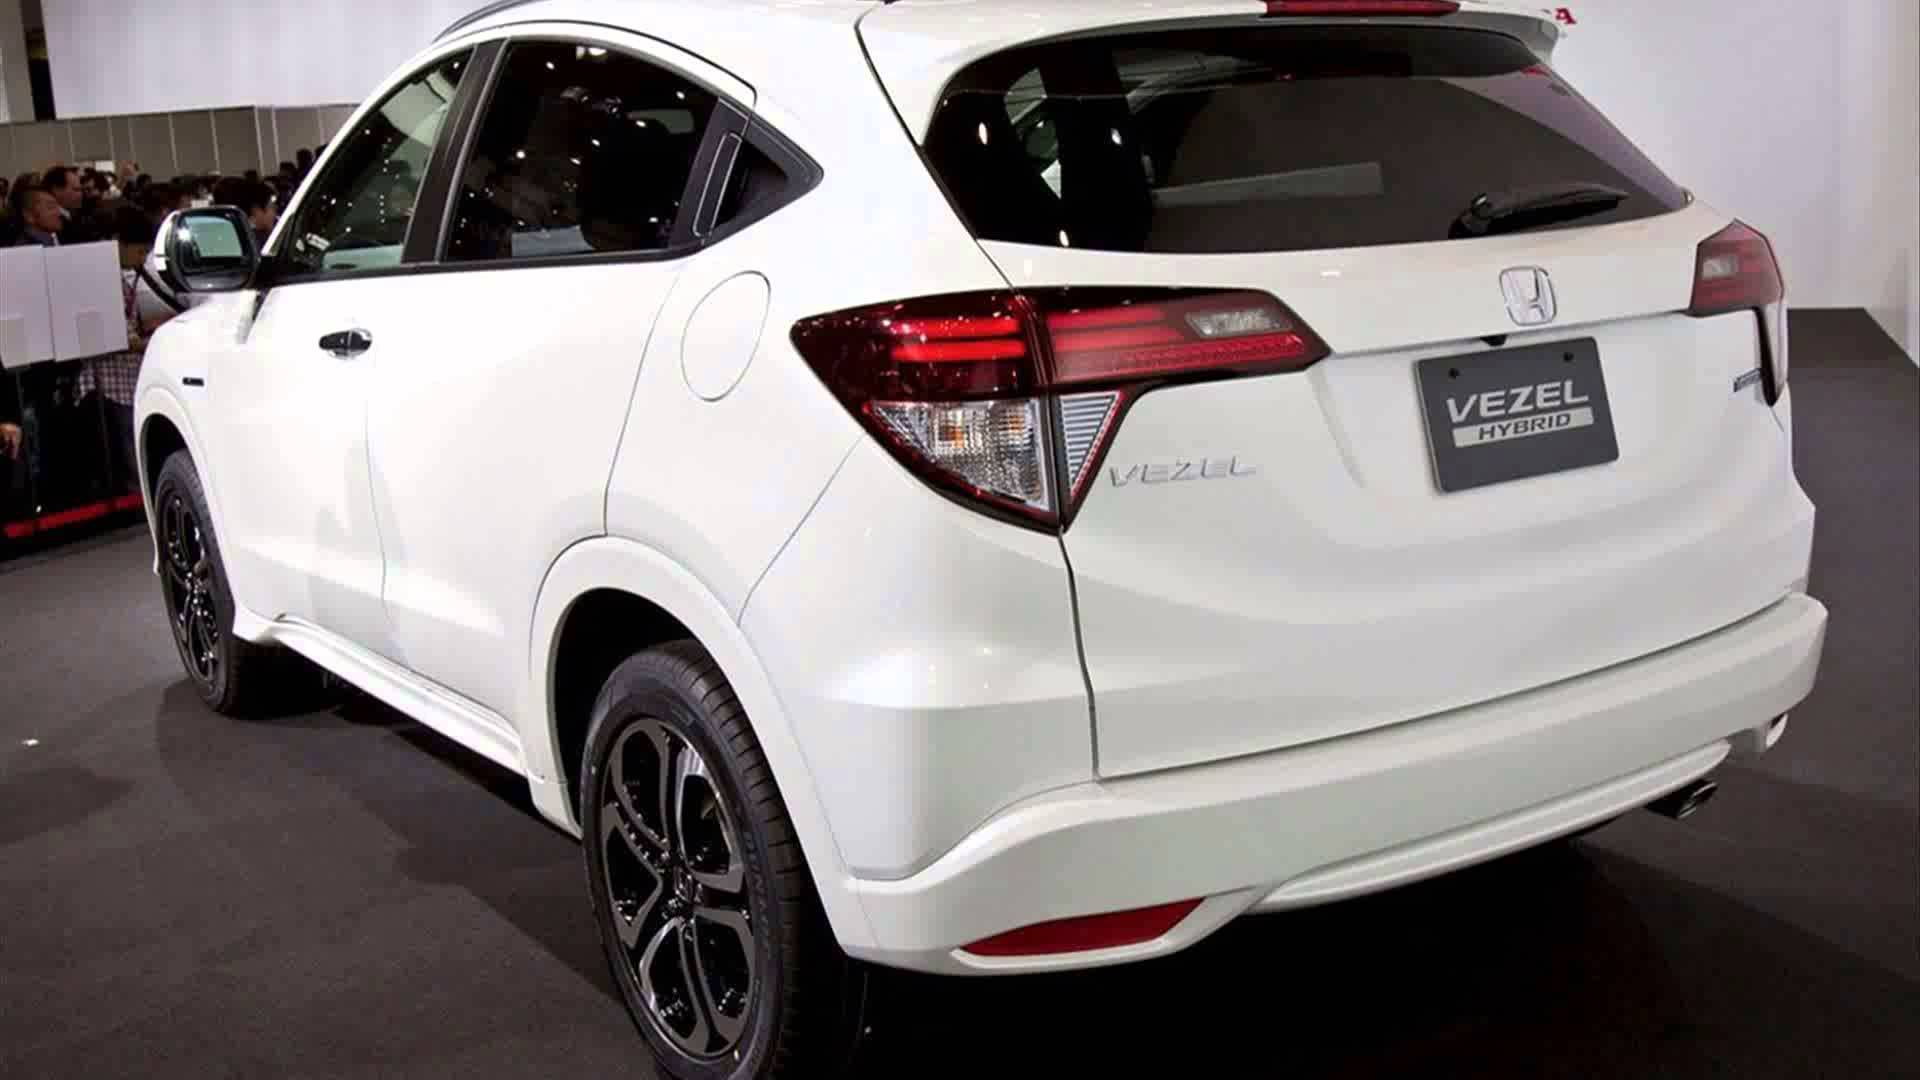 Honda Vezel  Exterior Rear View